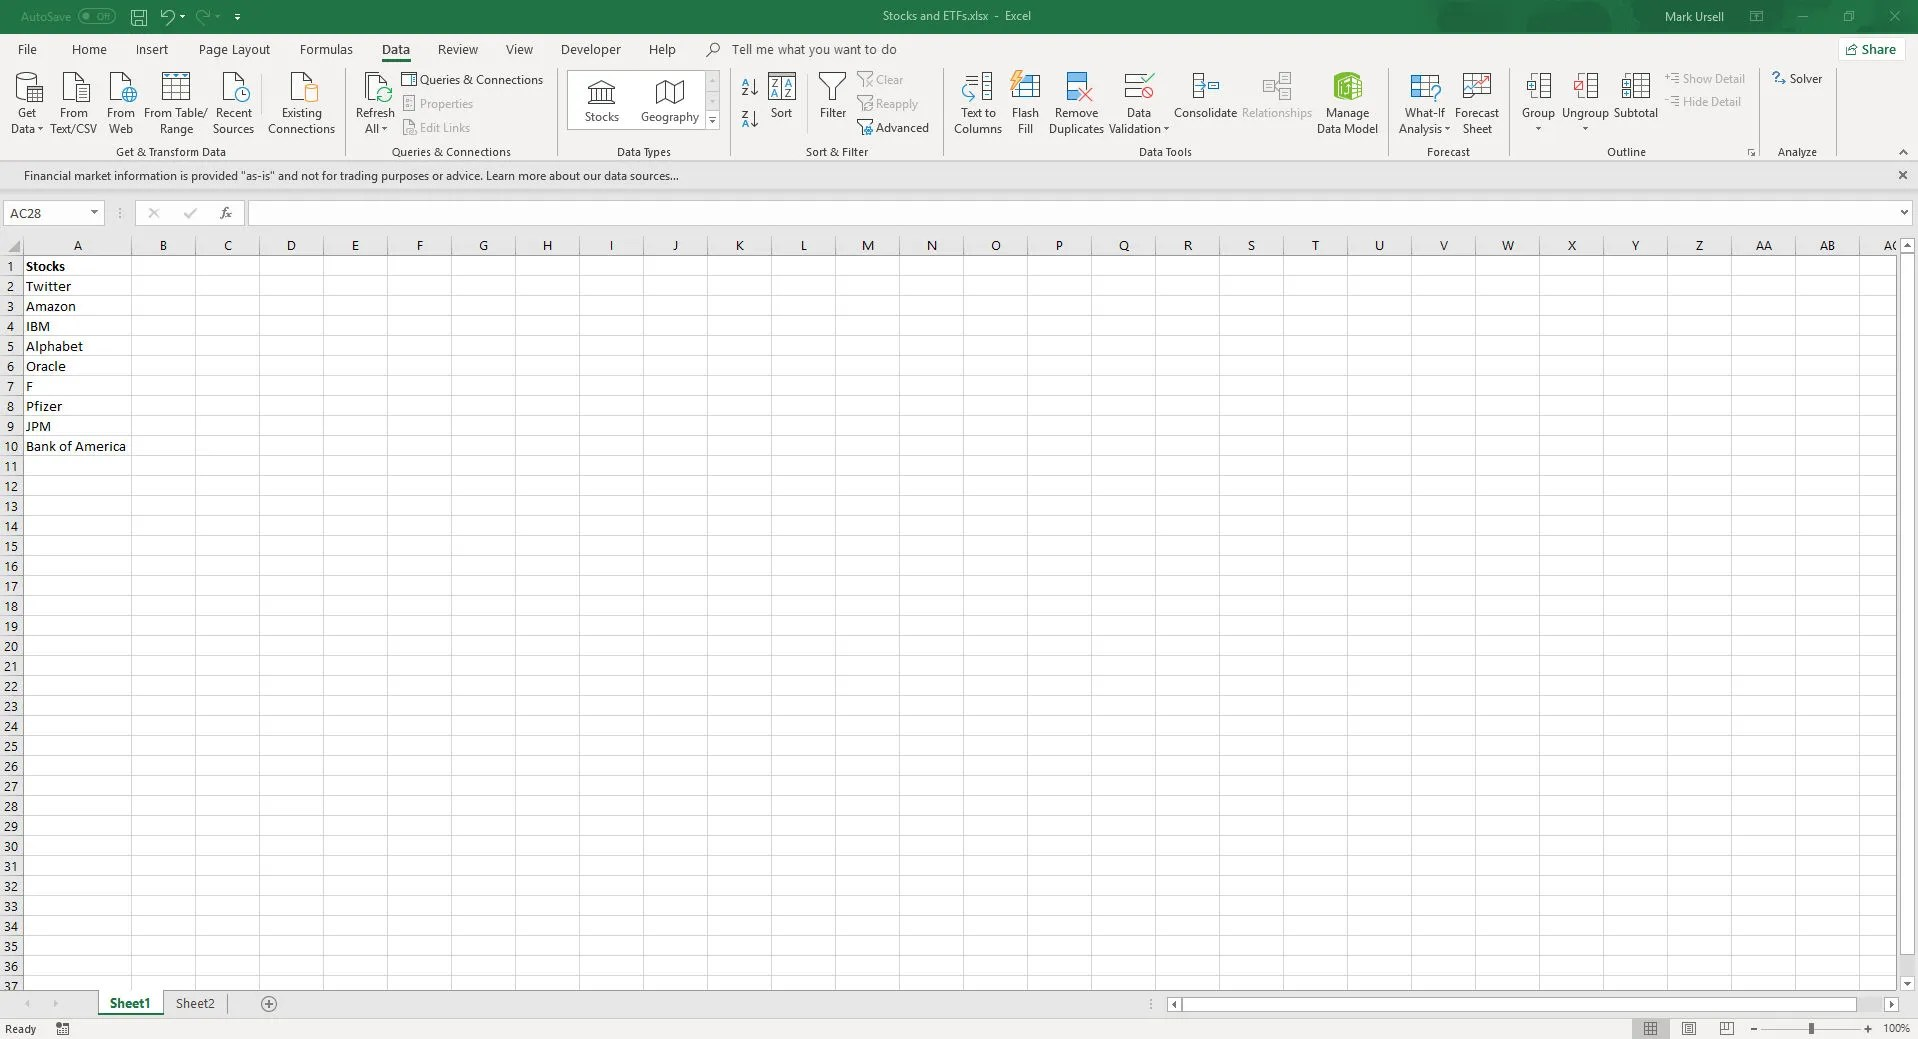 Get Live Stock And Etf Data In Excel 365